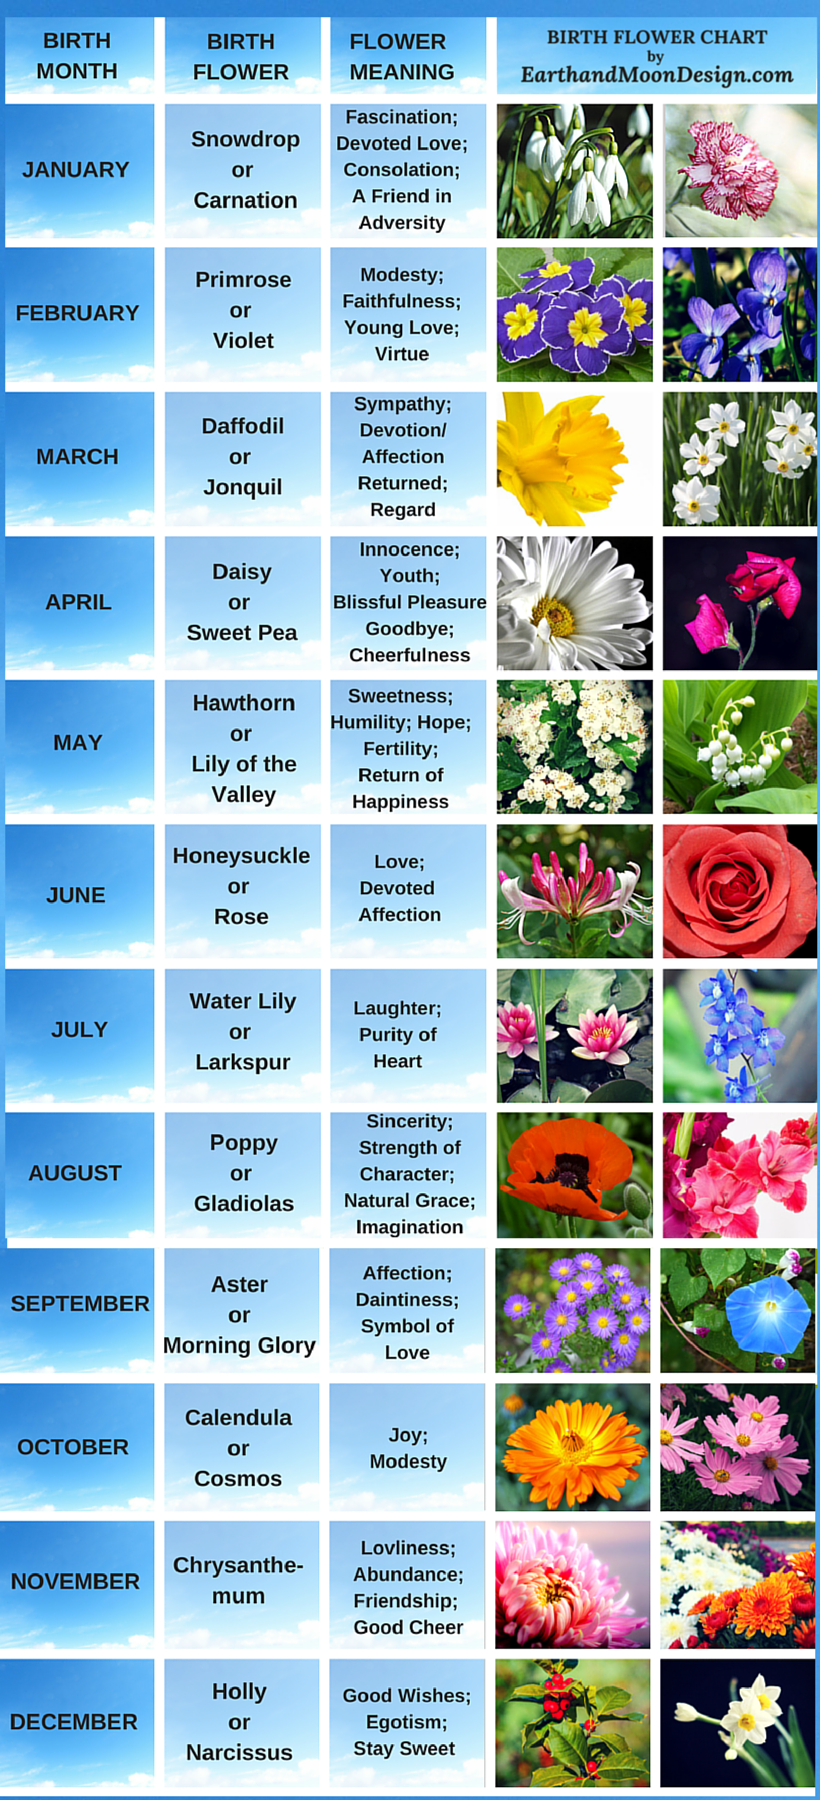 Birth flowers aprils daisy and sweet pea inspiration birth flower chart by earthandmoondesign izmirmasajfo